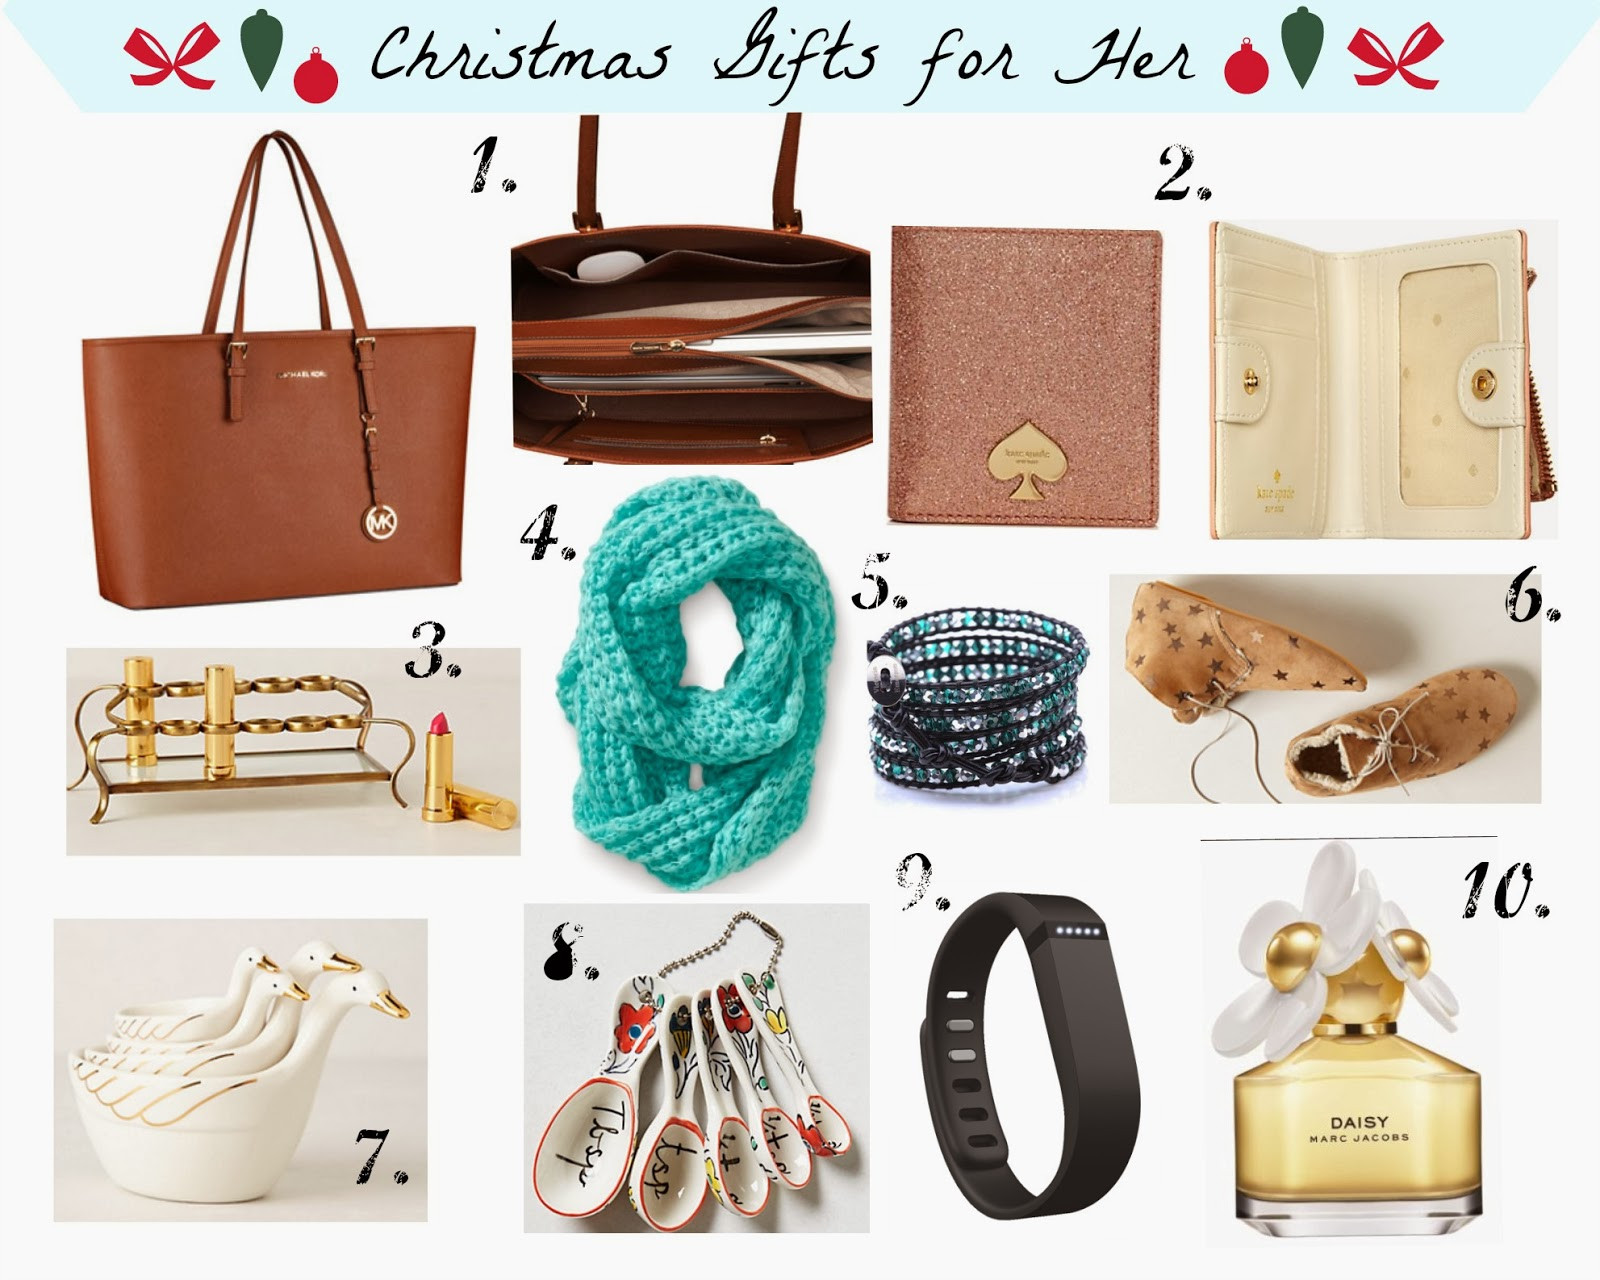 Best ideas about Holiday Gift Ideas For Her . Save or Pin Best Gifts Ideas for Her Fit & Fab Now.